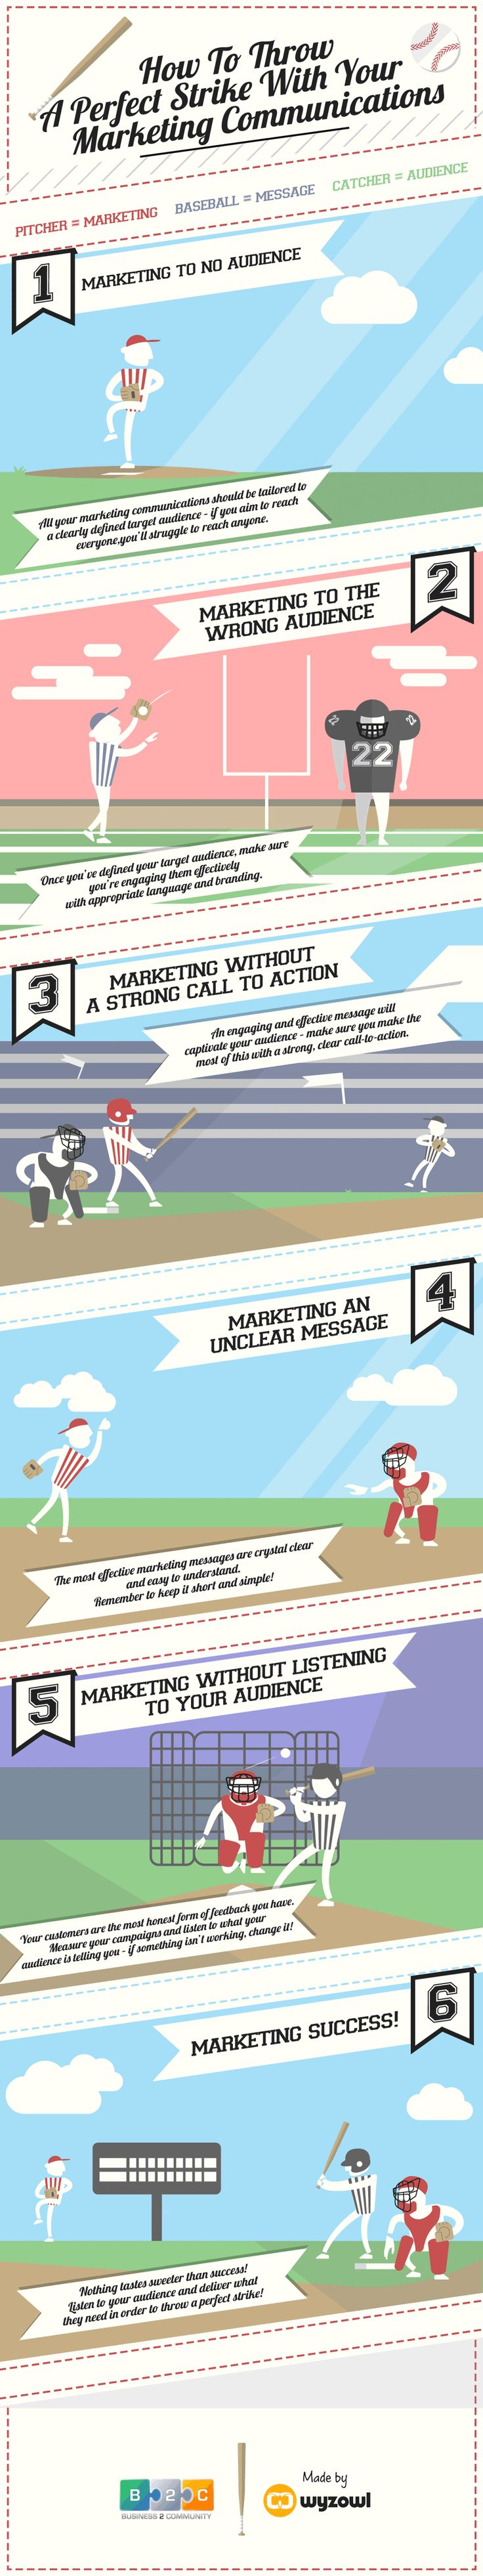 How To Throw A Perfect Strike With Your Marketing Communications (Infographic)